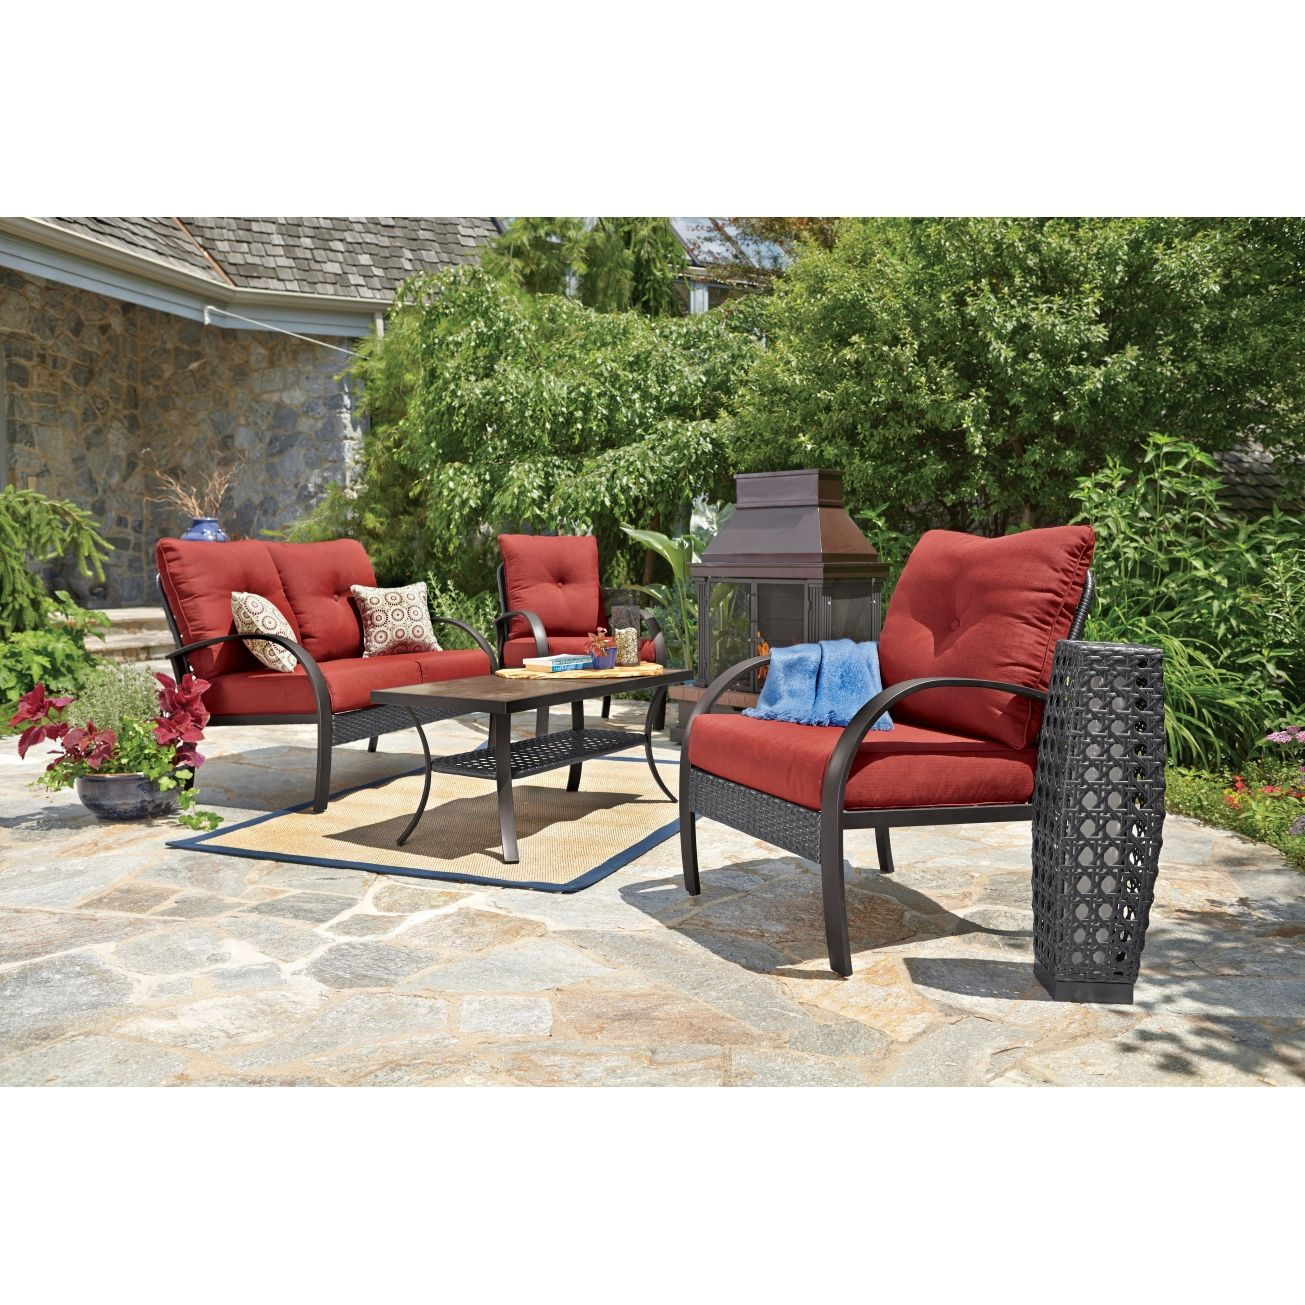 Anderson 4 Pc. Deep Seating Set - All Patio Collections - Ace ...